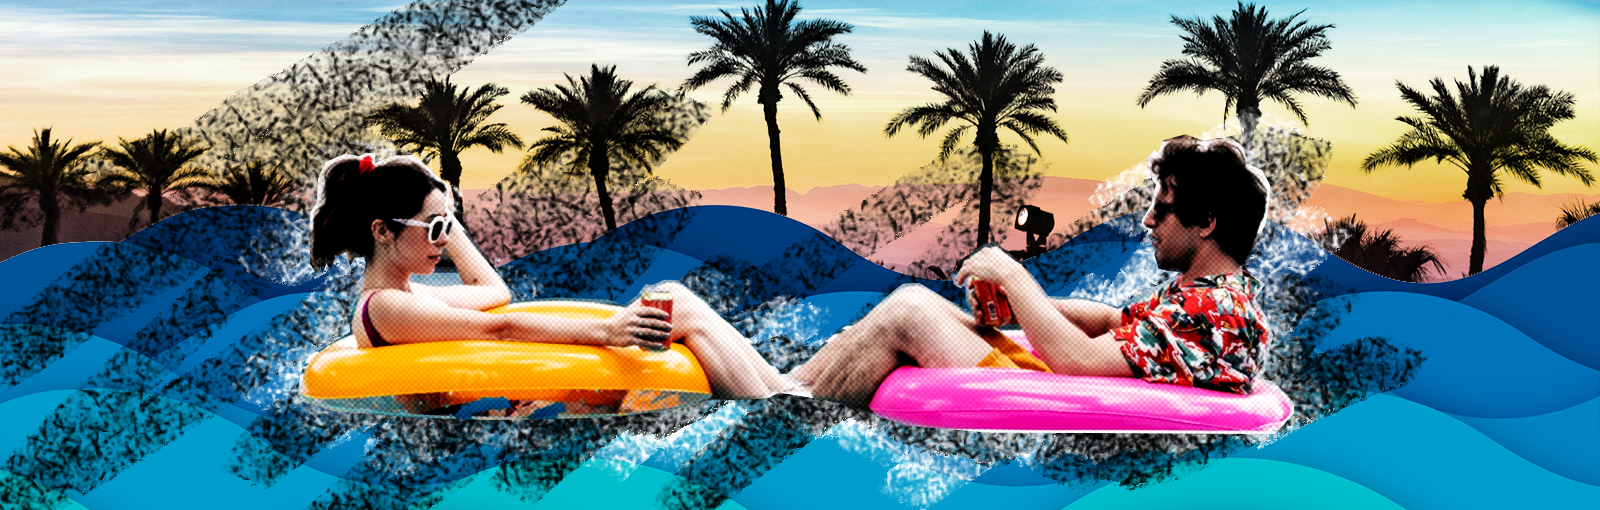 The Filmmakers Behind 'Palm Springs' Let Us In On Its Secrets